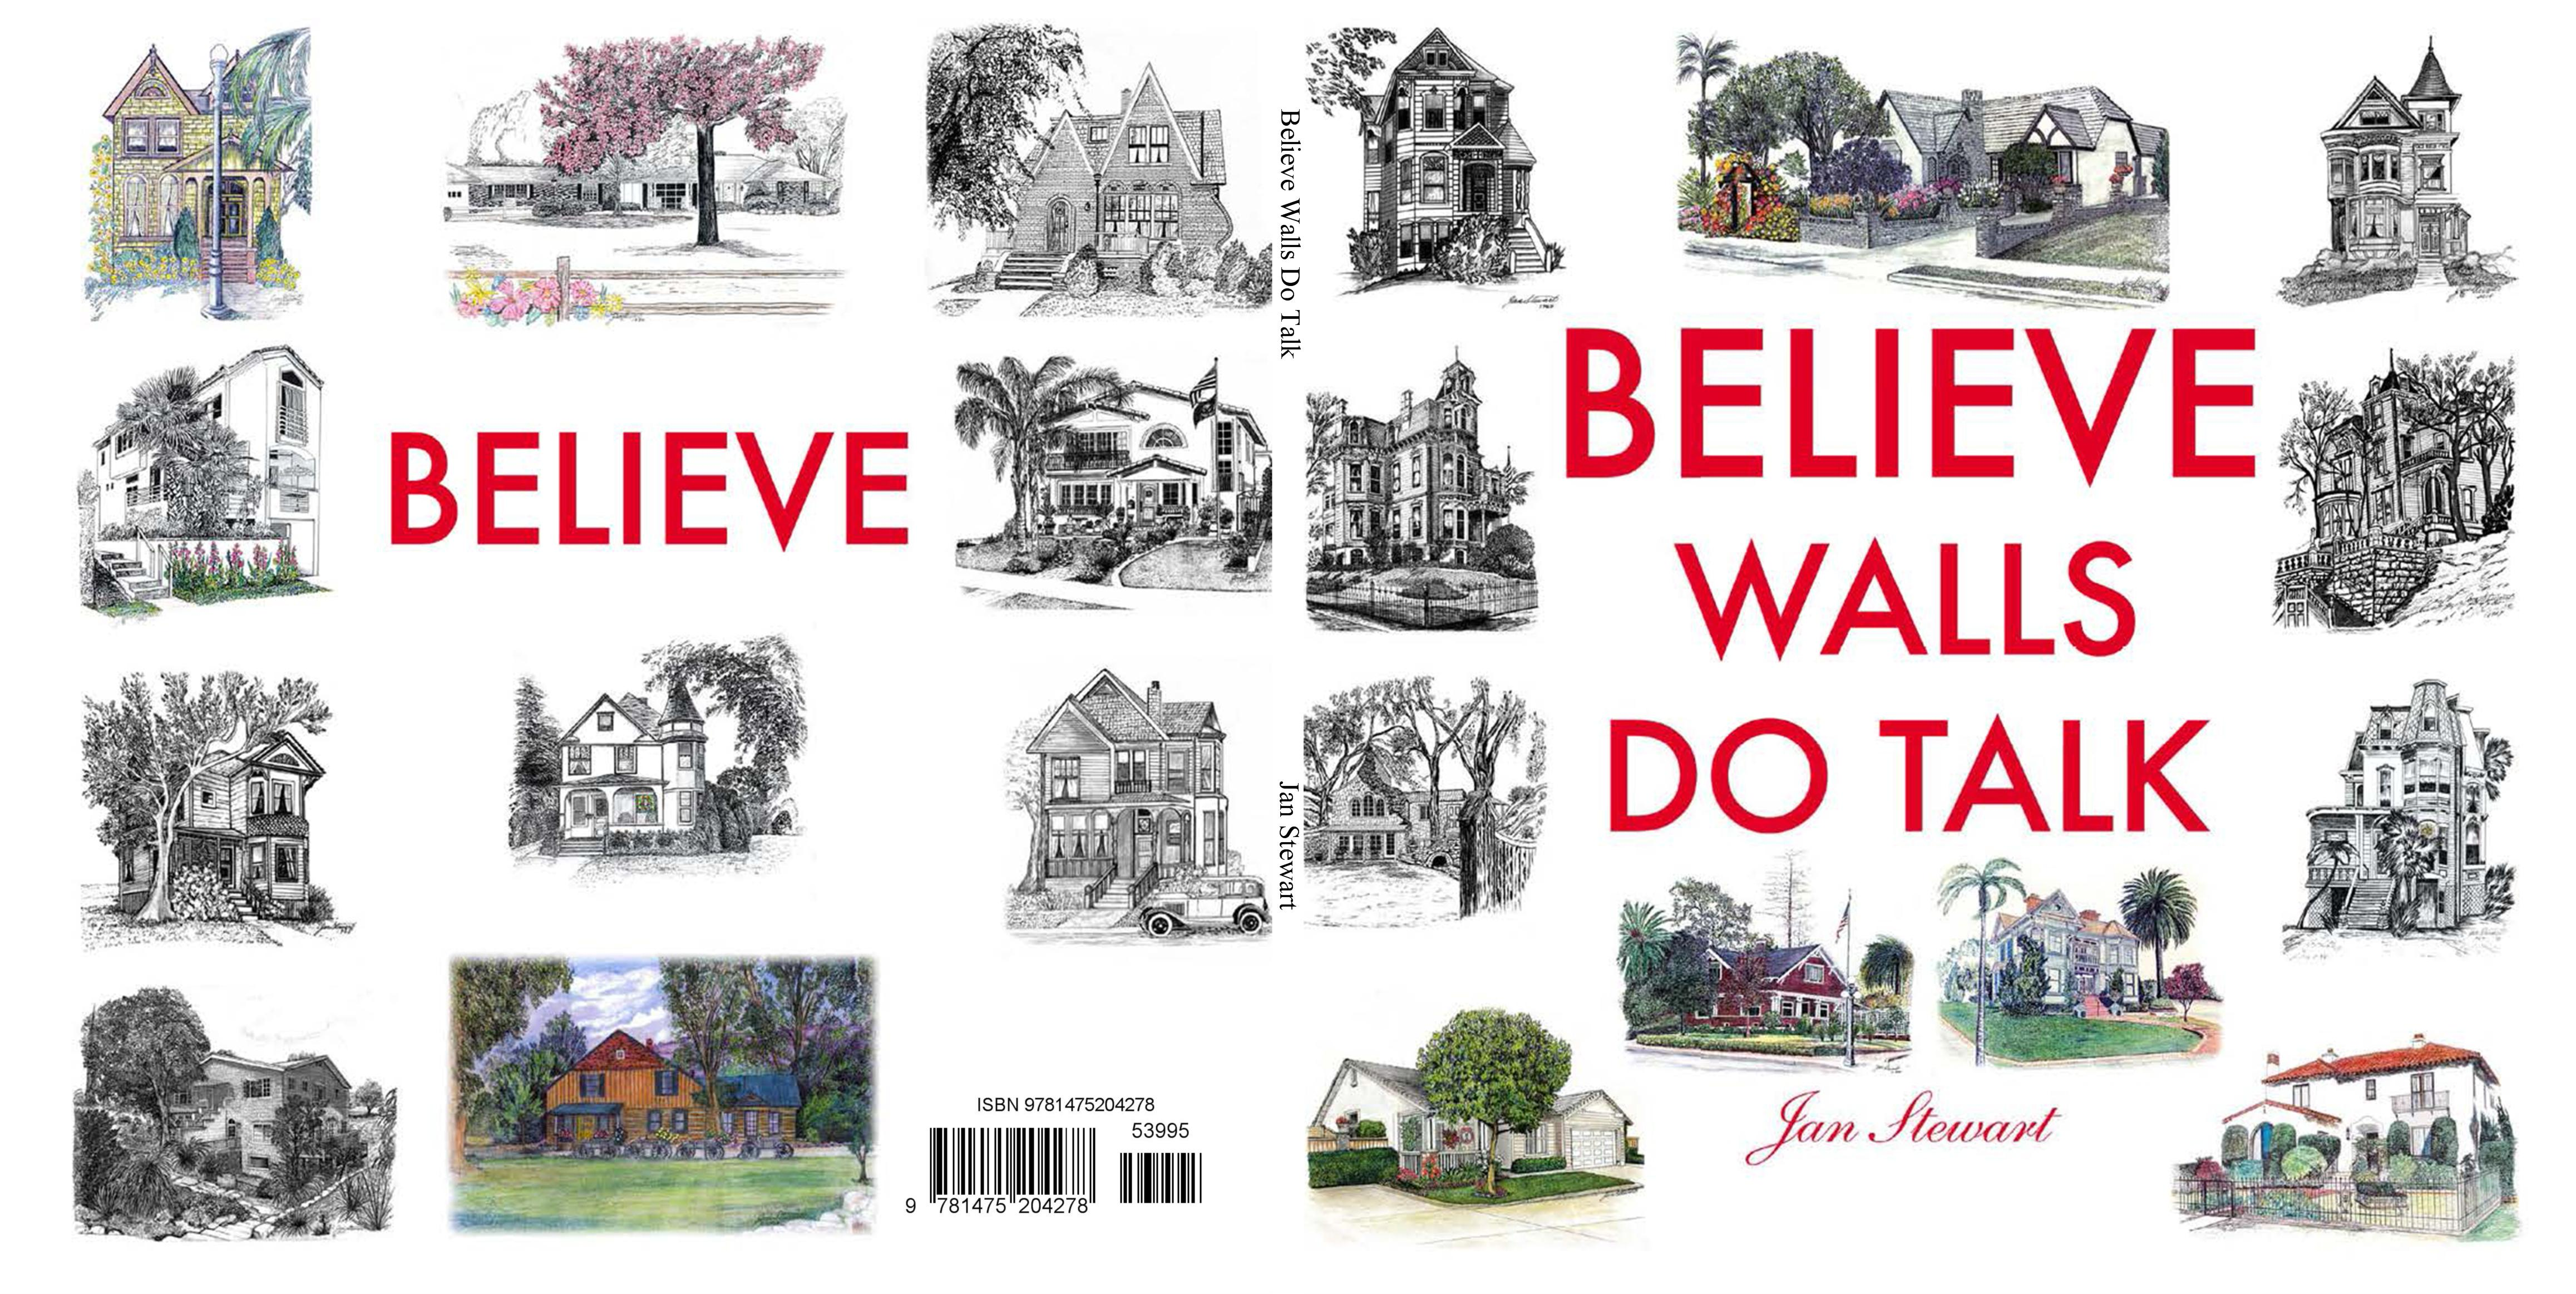 Believe Walls Do Talk cover image